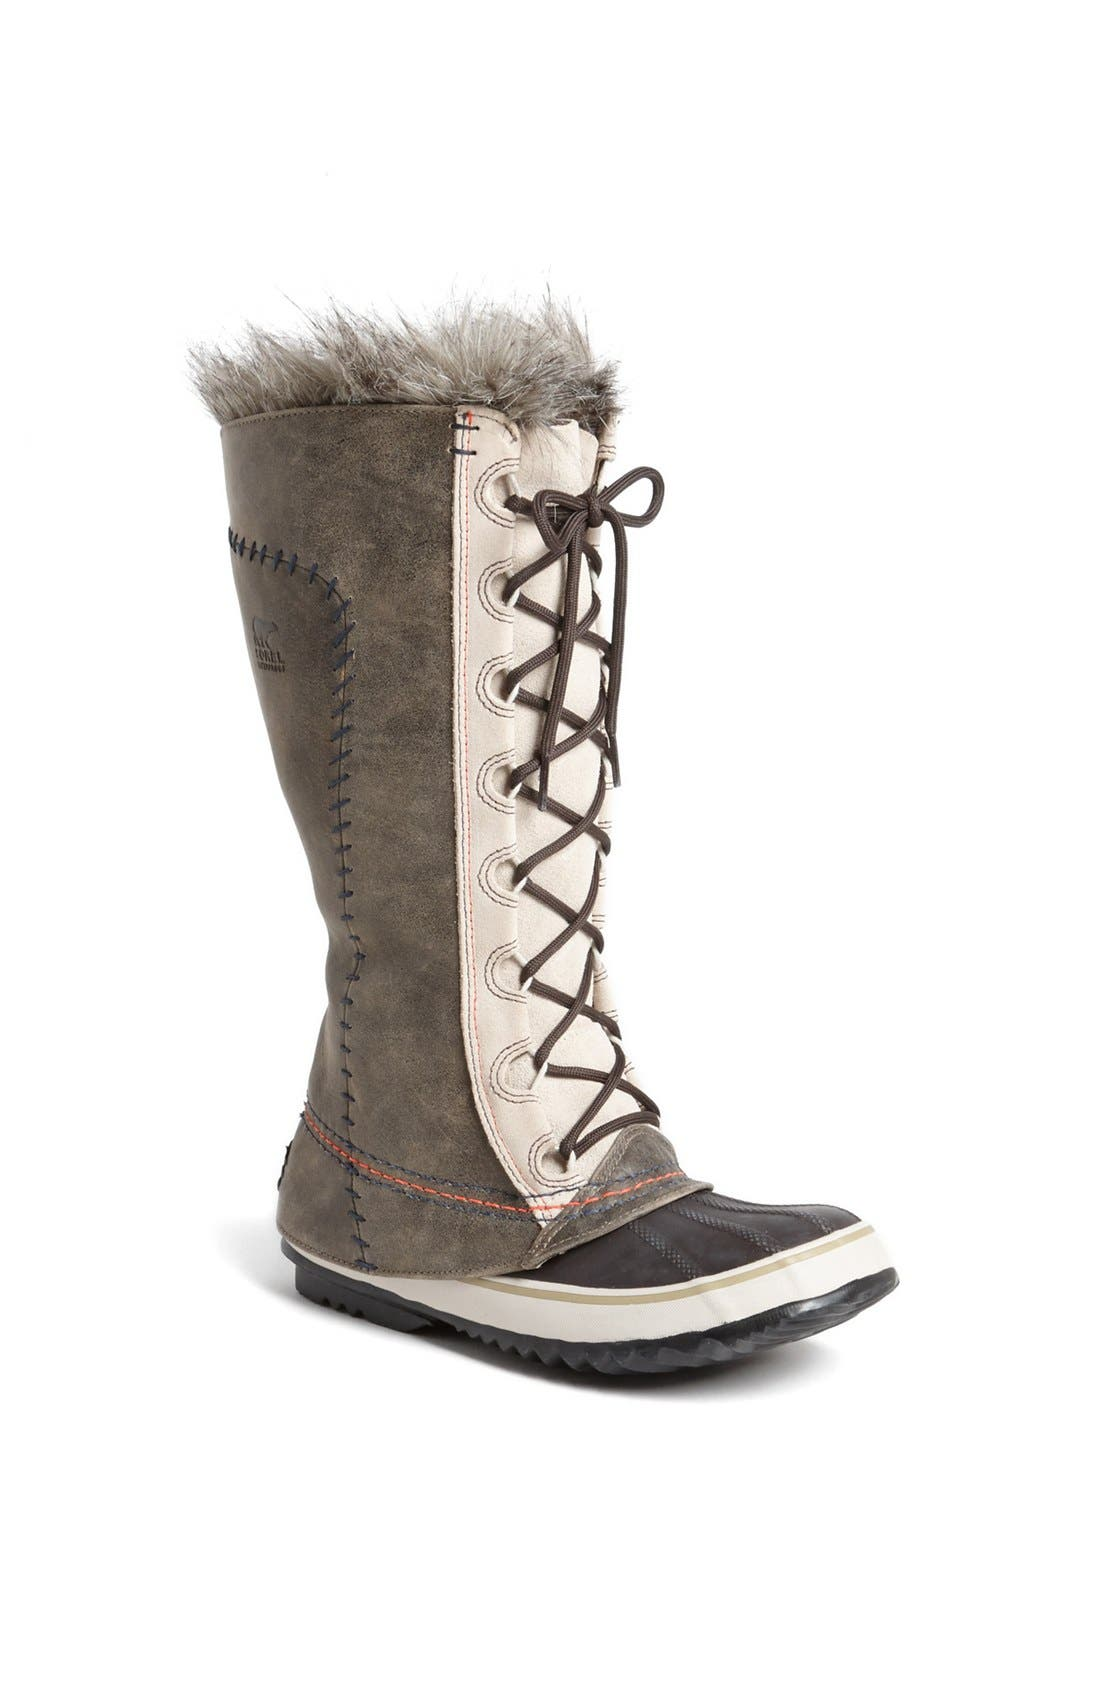 'Cate the Great - Deco' Waterproof Suede Duck Boot, Main, color, 099